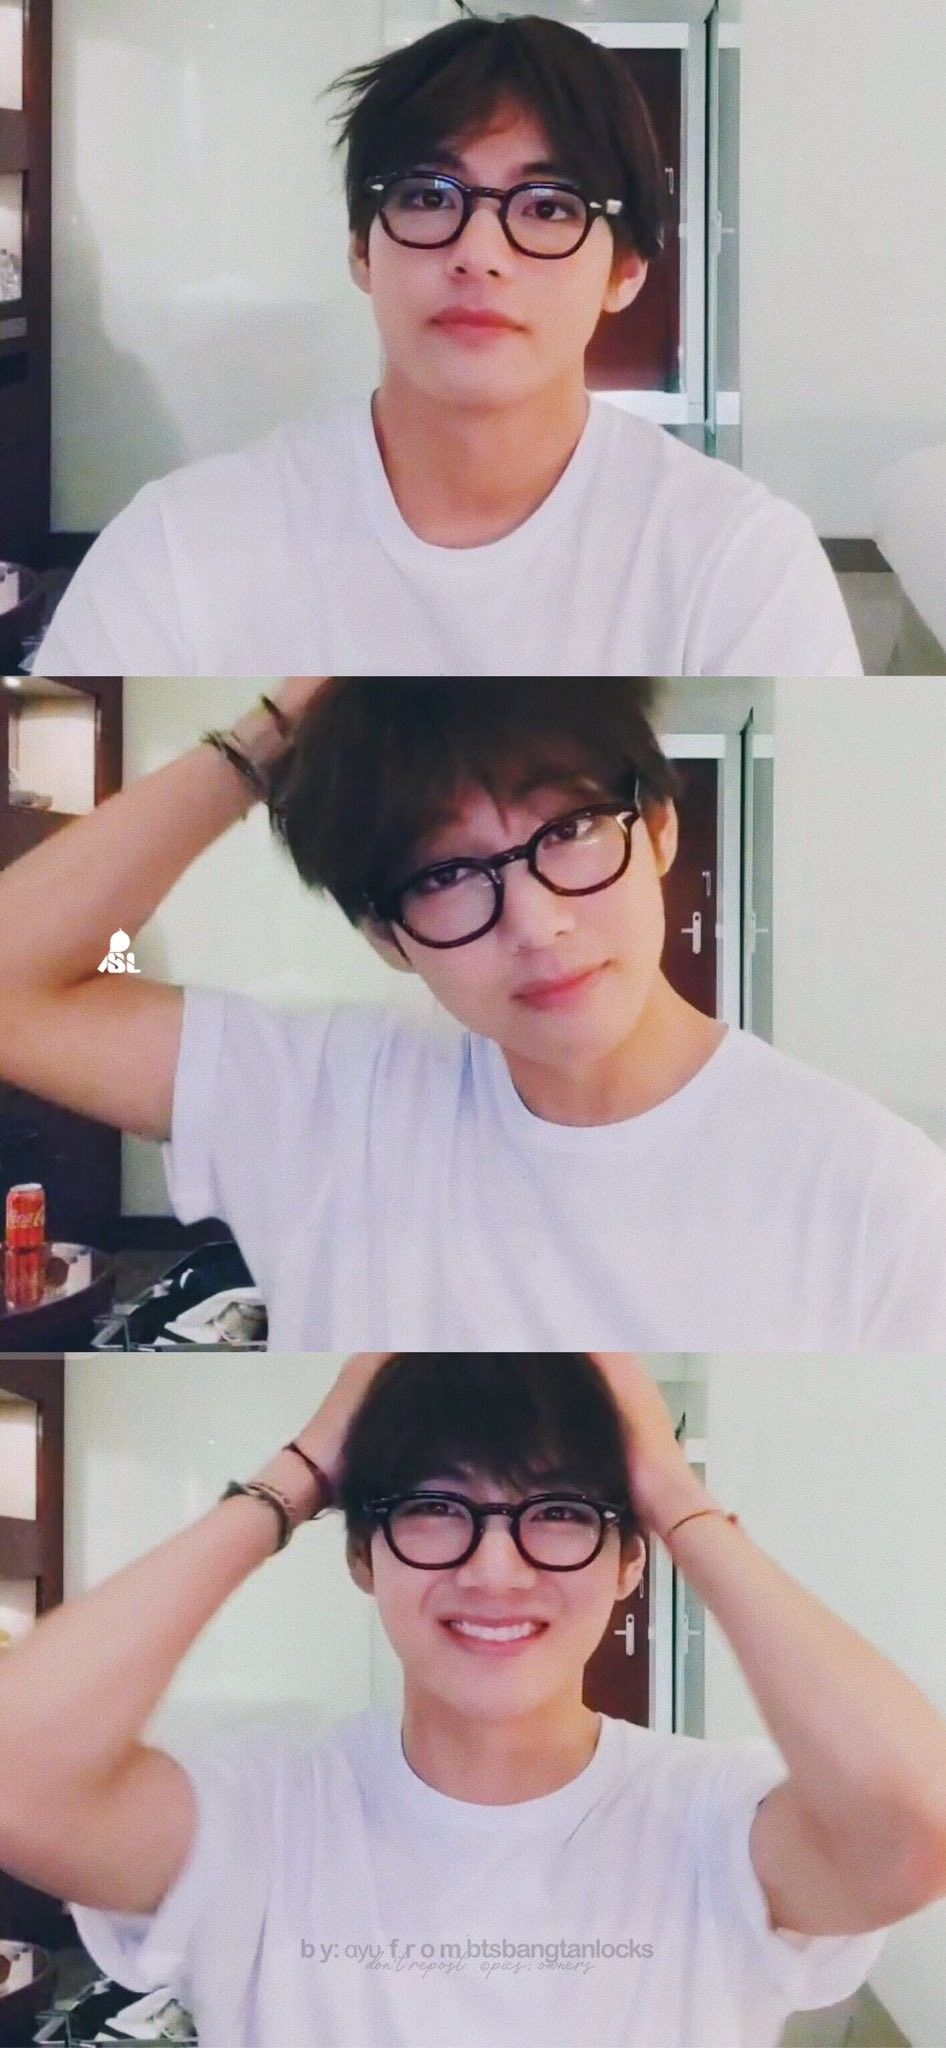 Taehyung On Vlive Wallpaper Credits To Twitter Btsbangtanlocks C Taehyung Bts Taehyung Kim Taehyung Taehyung Bts taehyung vlive wallpaper